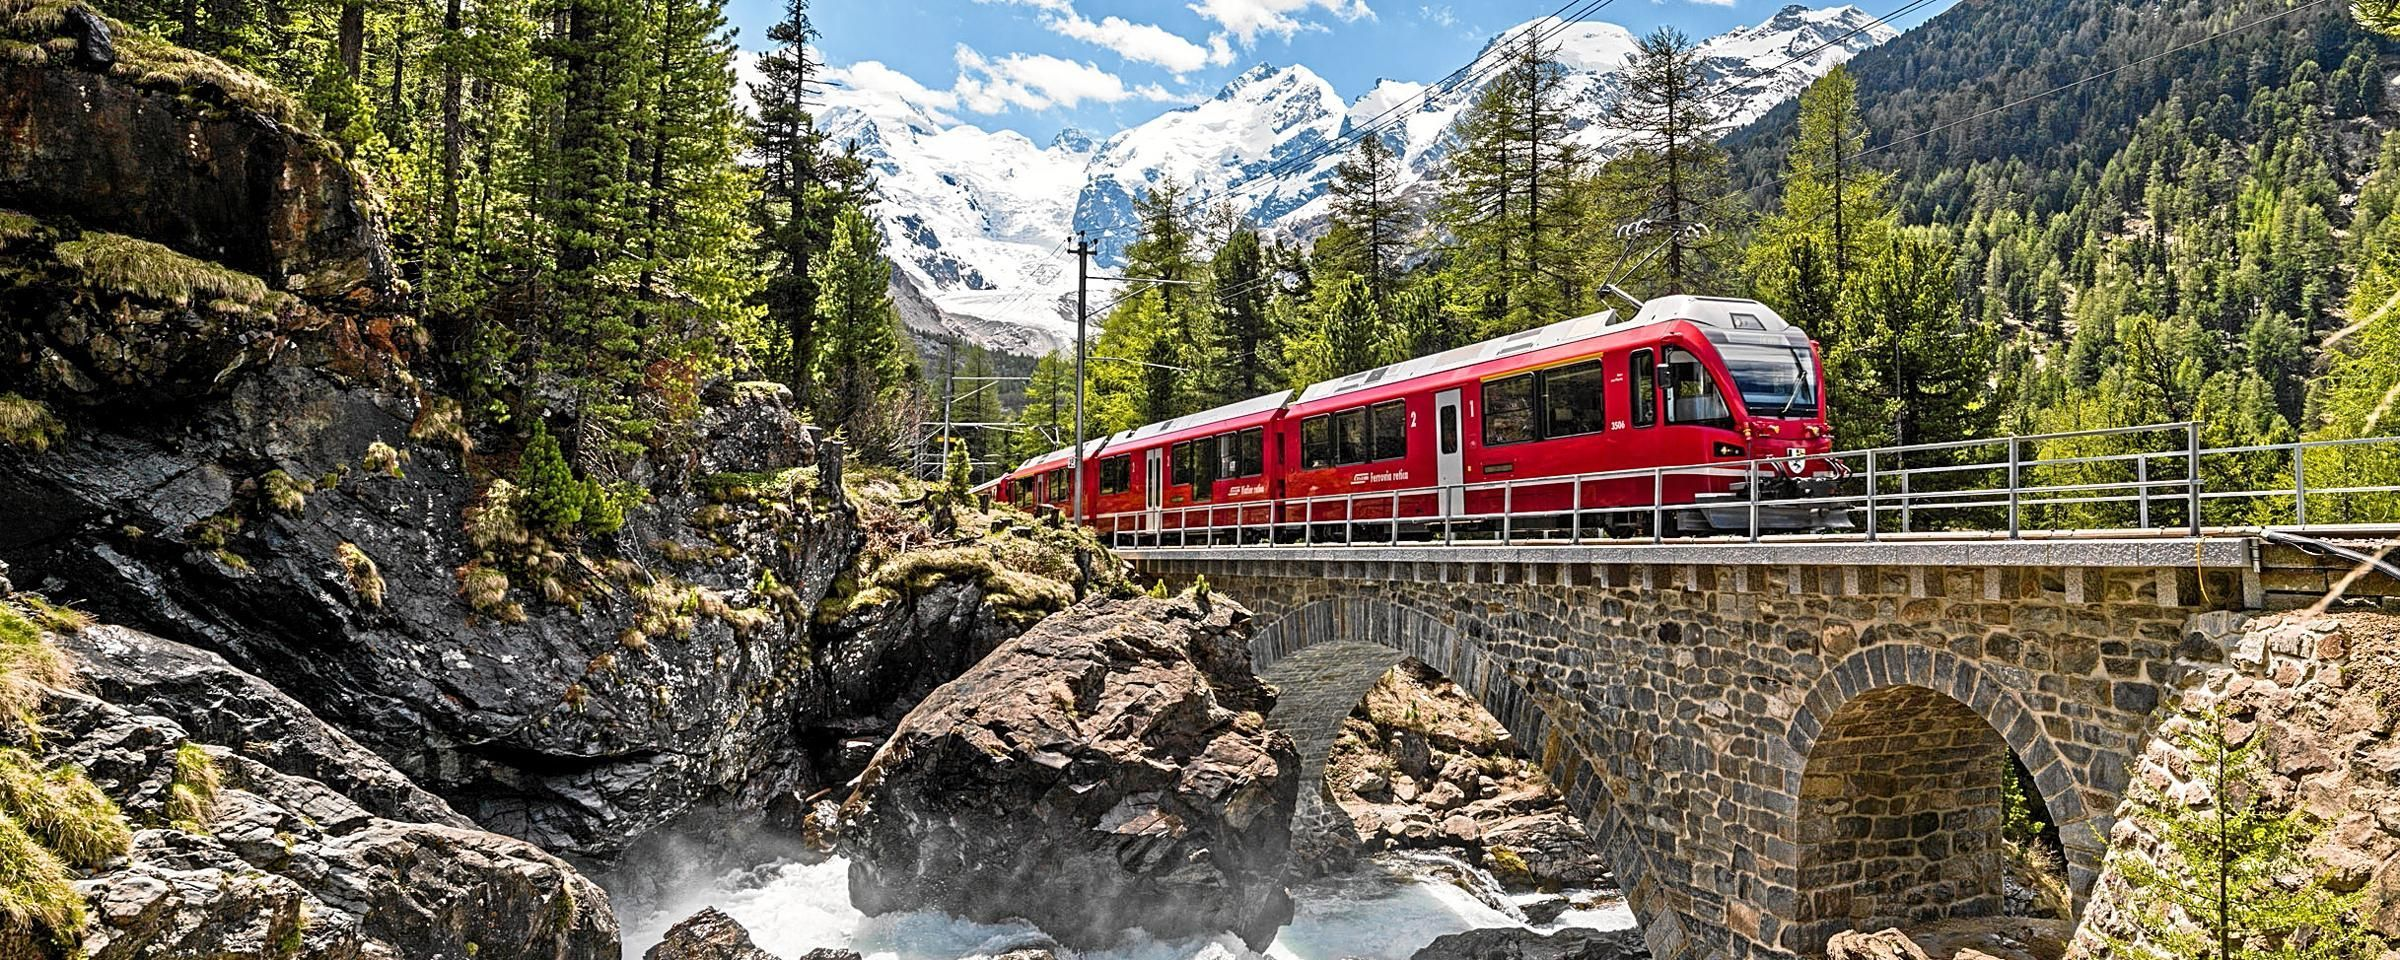 Italian Lakes Retreat and Scenic Swiss Rail